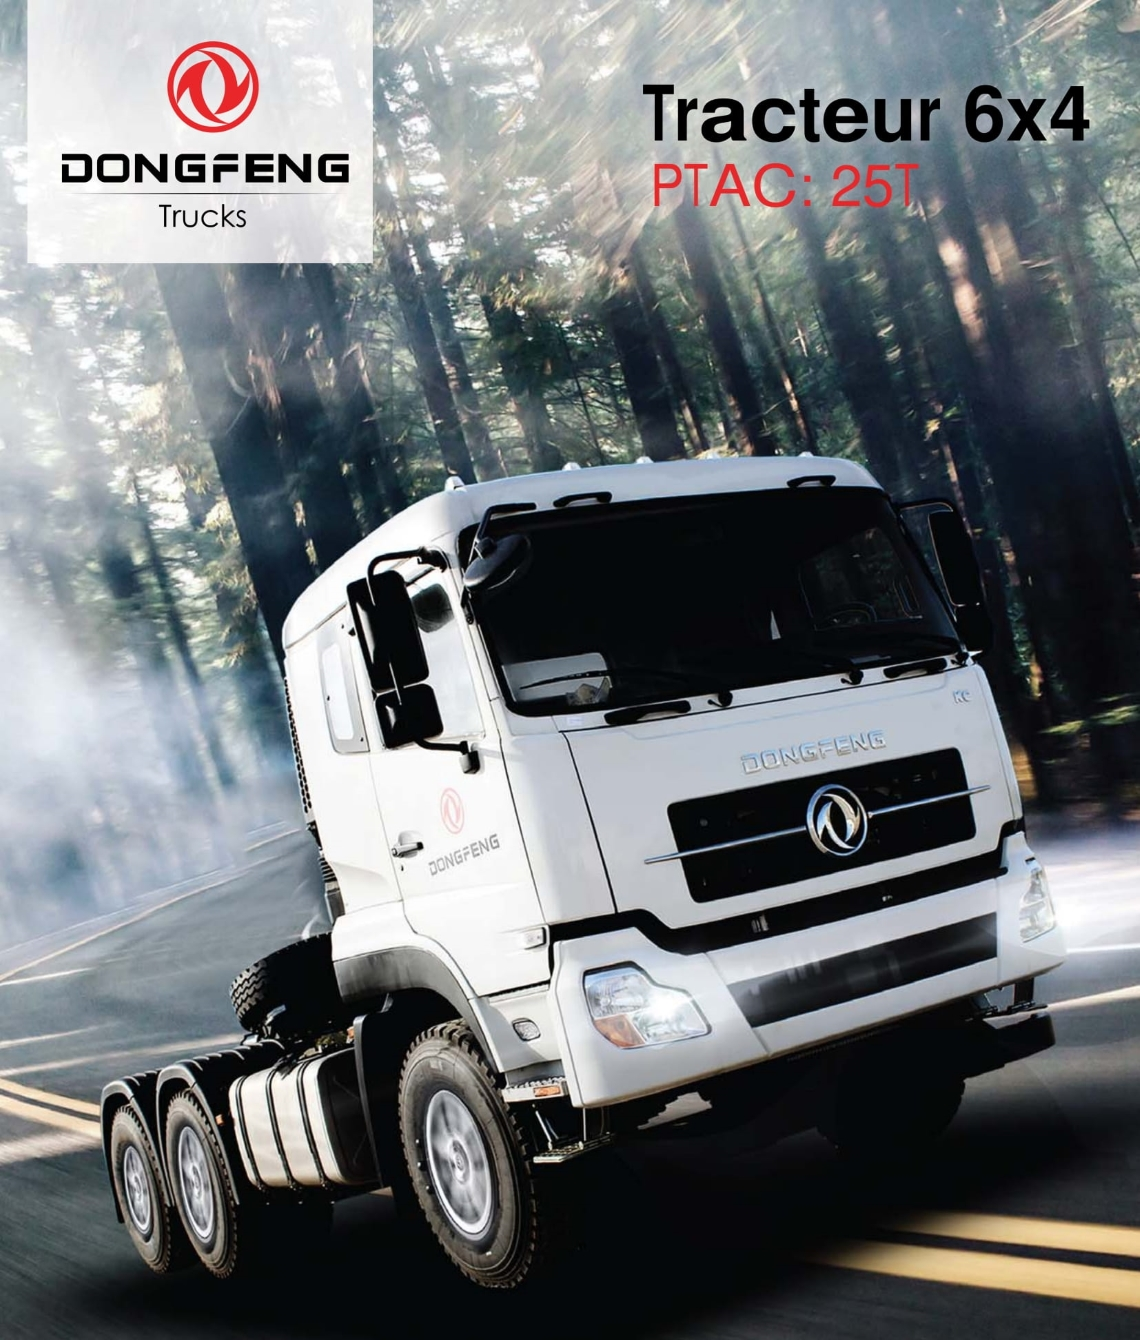 Prix camion Dongfeng Tracteur 6×4 neuf Tunisie